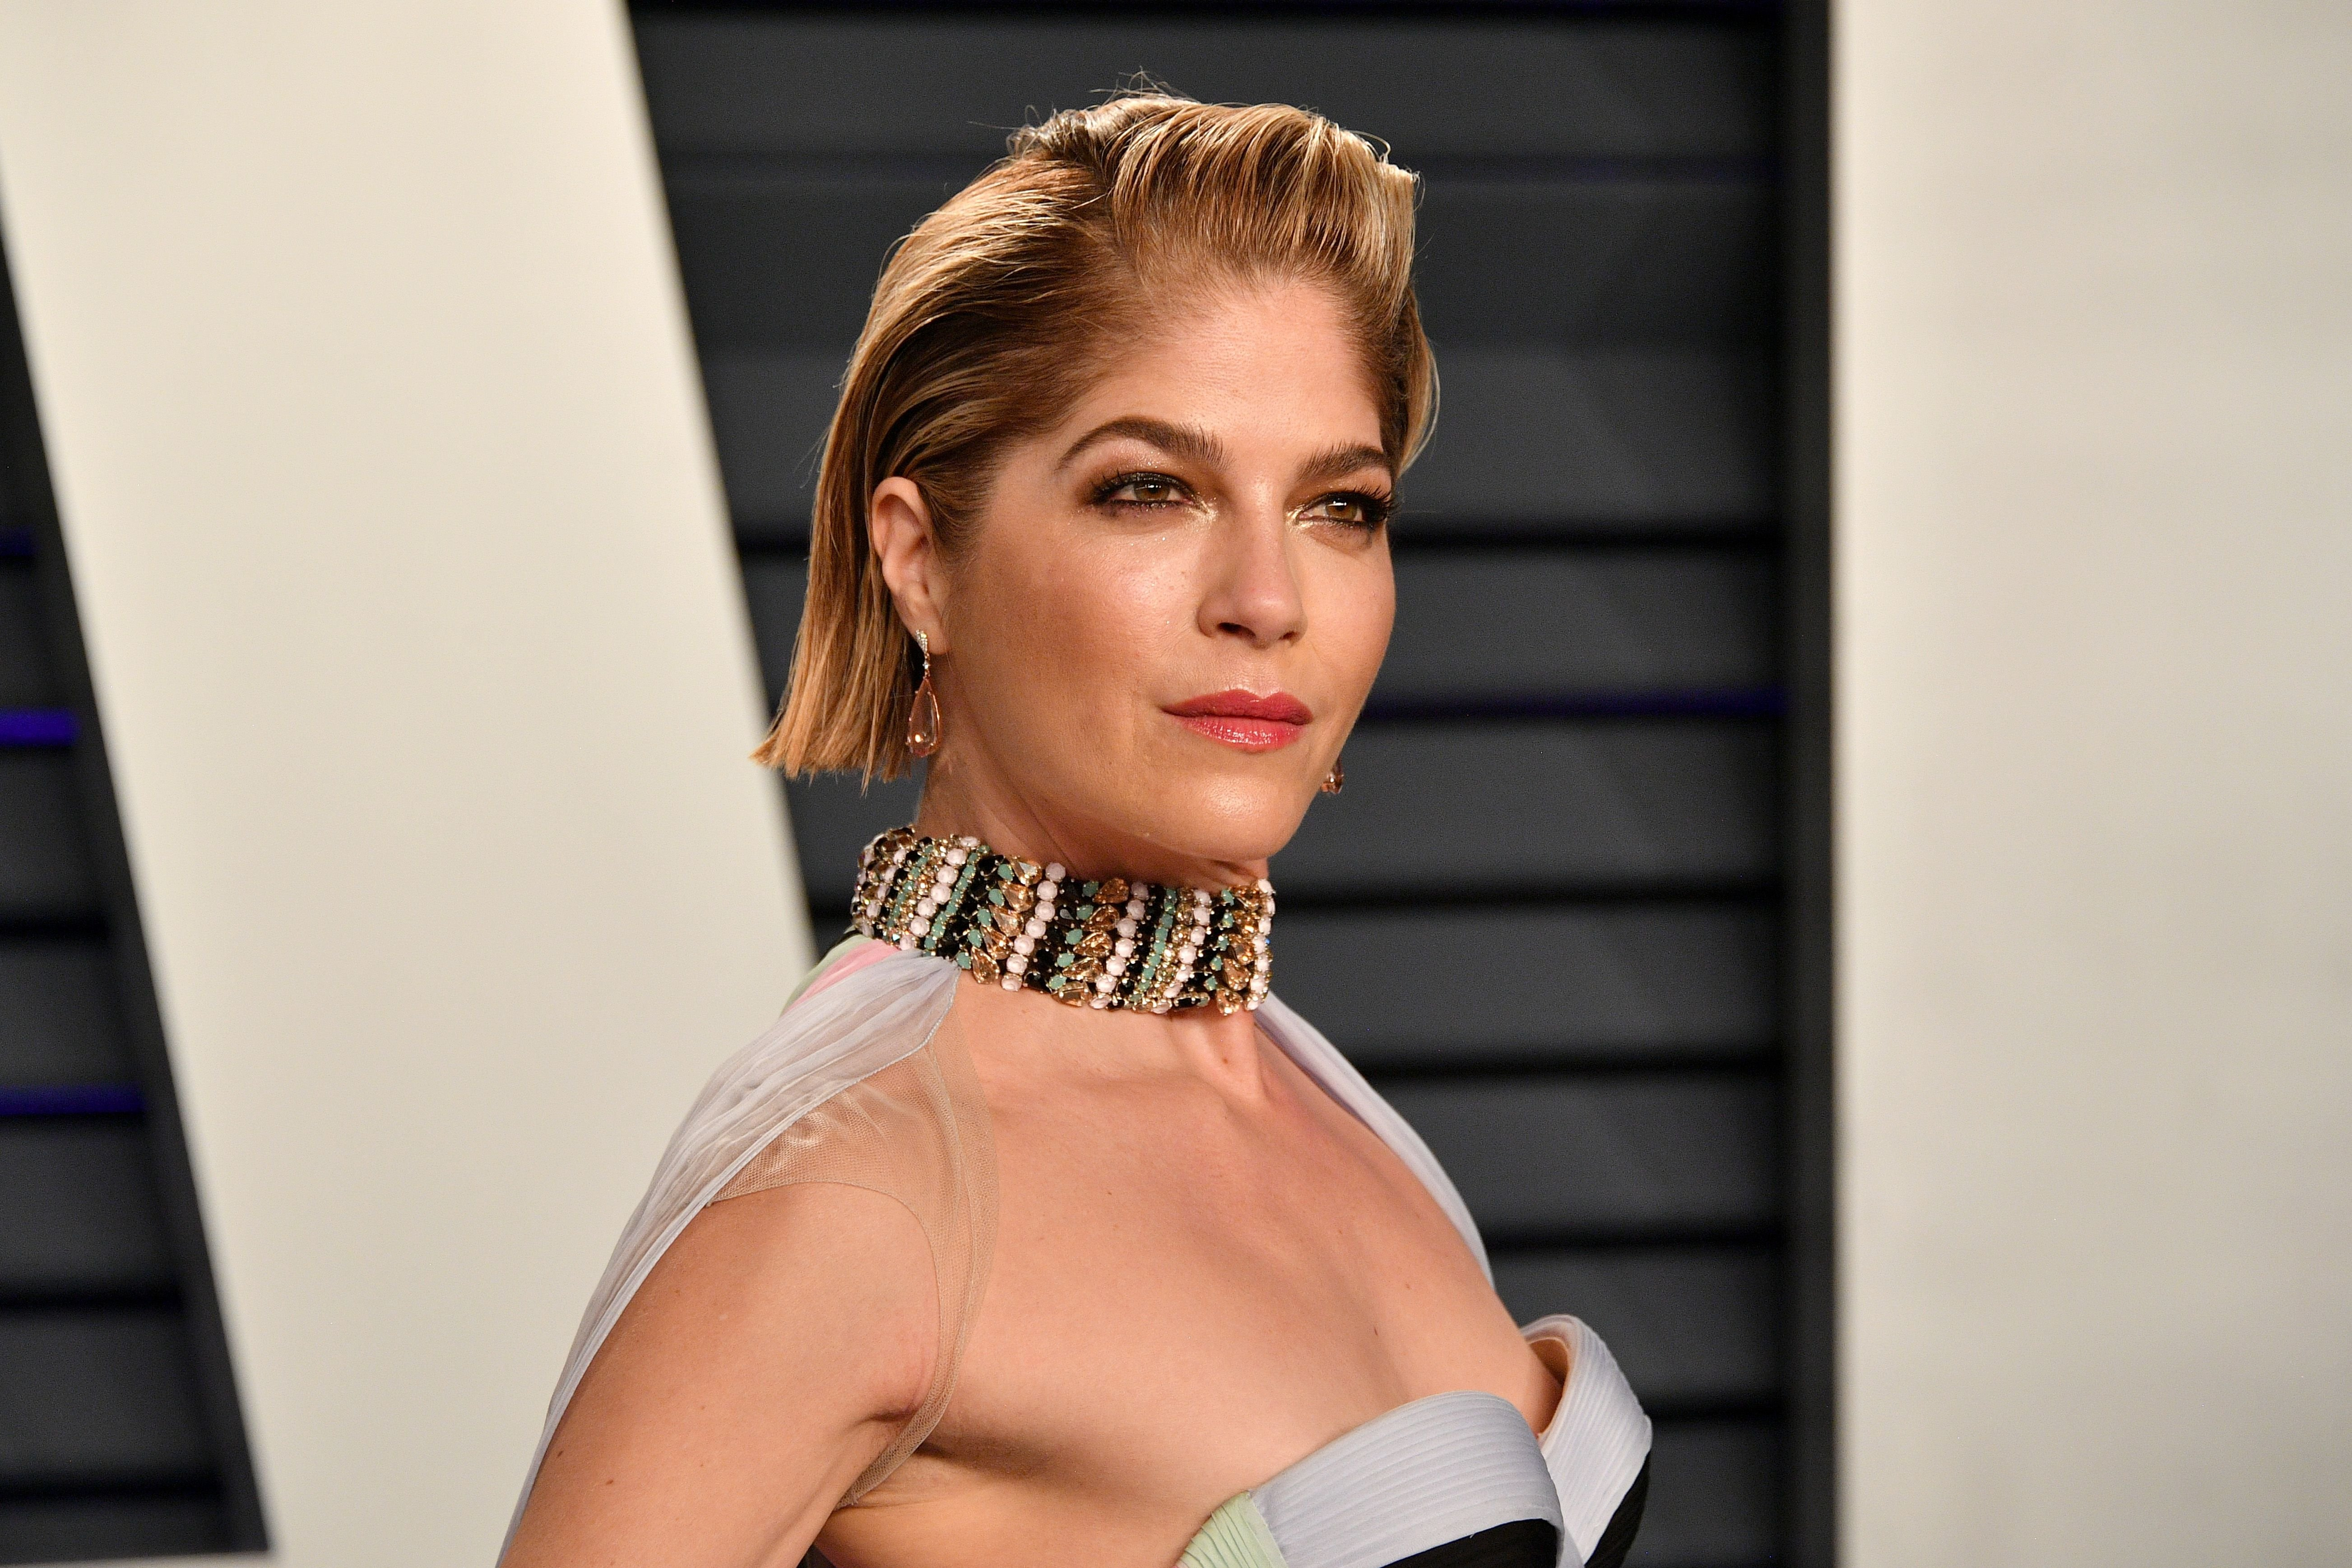 Selma Blair at the 2019 Vanity Fair Oscar Party in February 2019 in Beverly Hills | Source: Getty Images